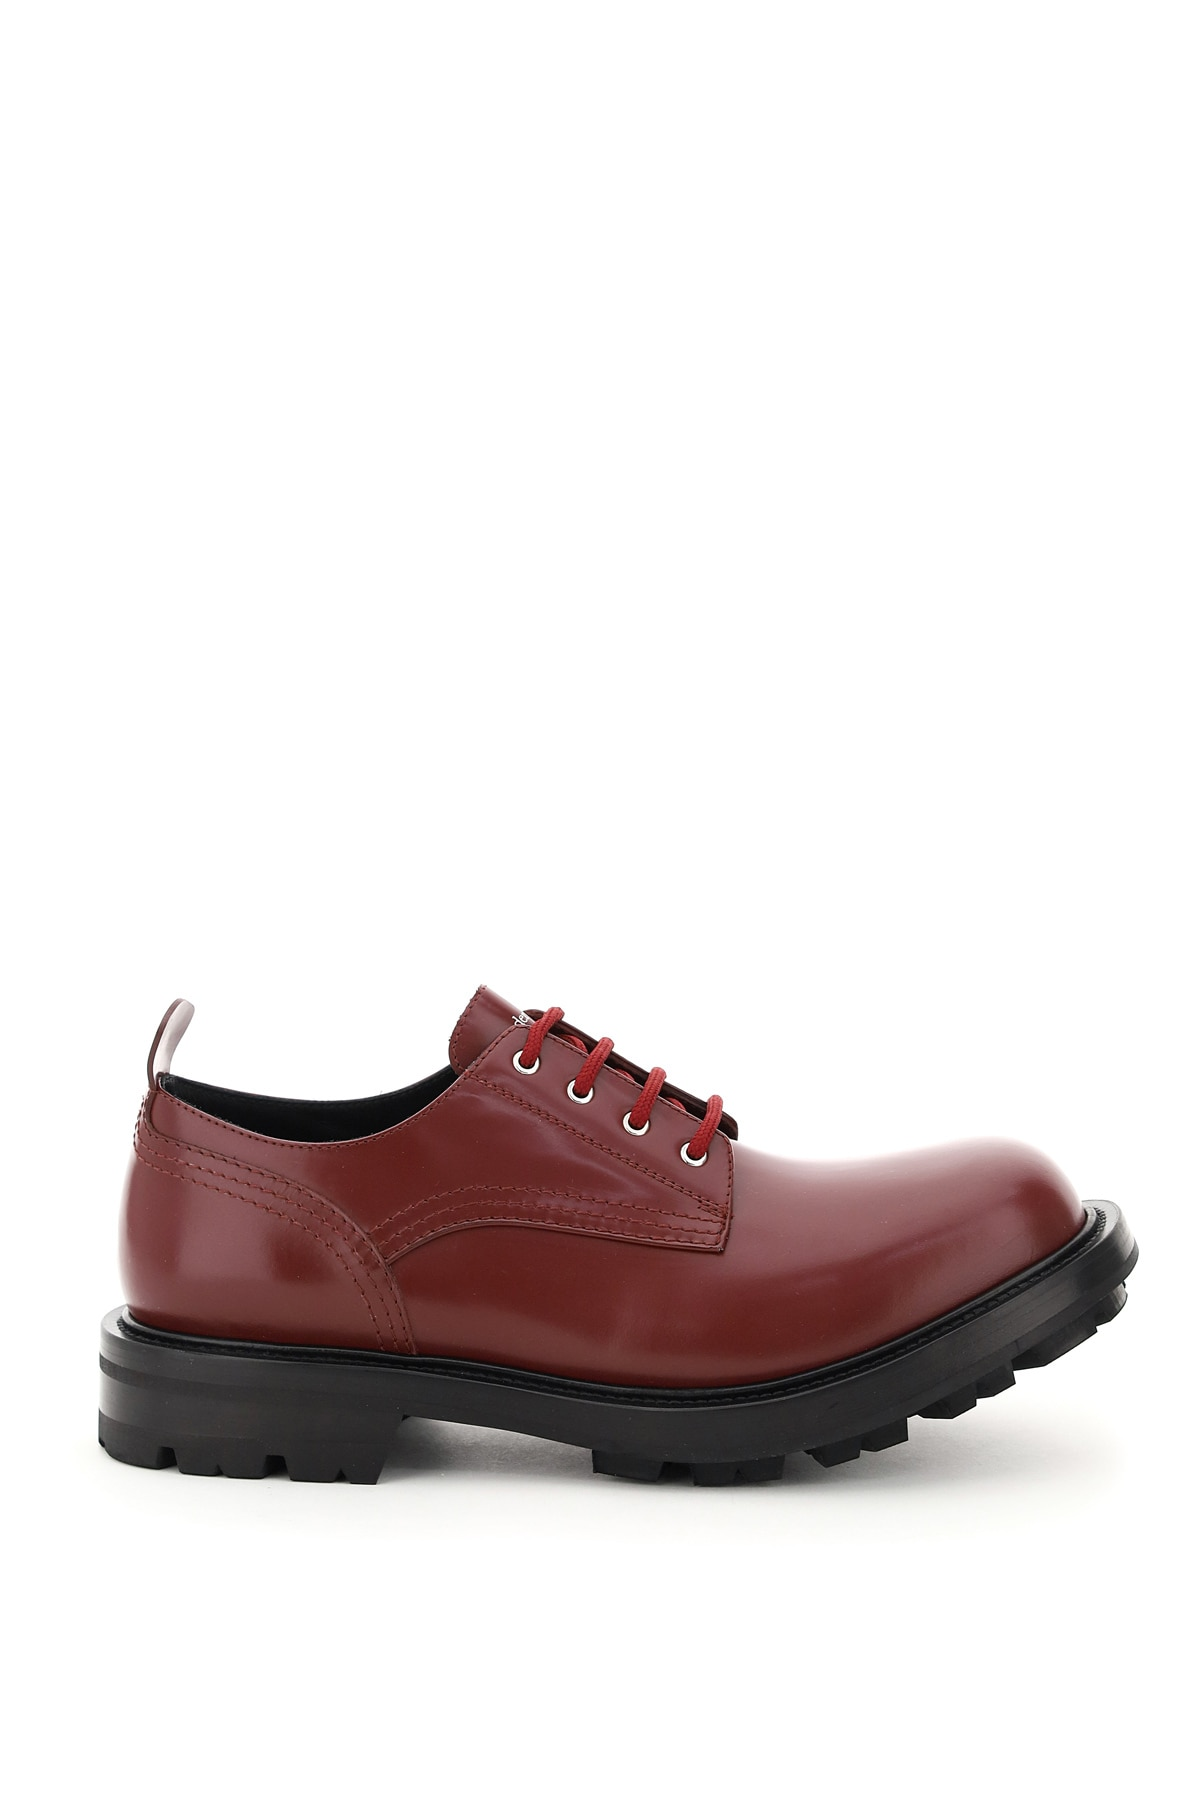 ALEXANDER MCQUEEN 0 42 Red, Black Leather